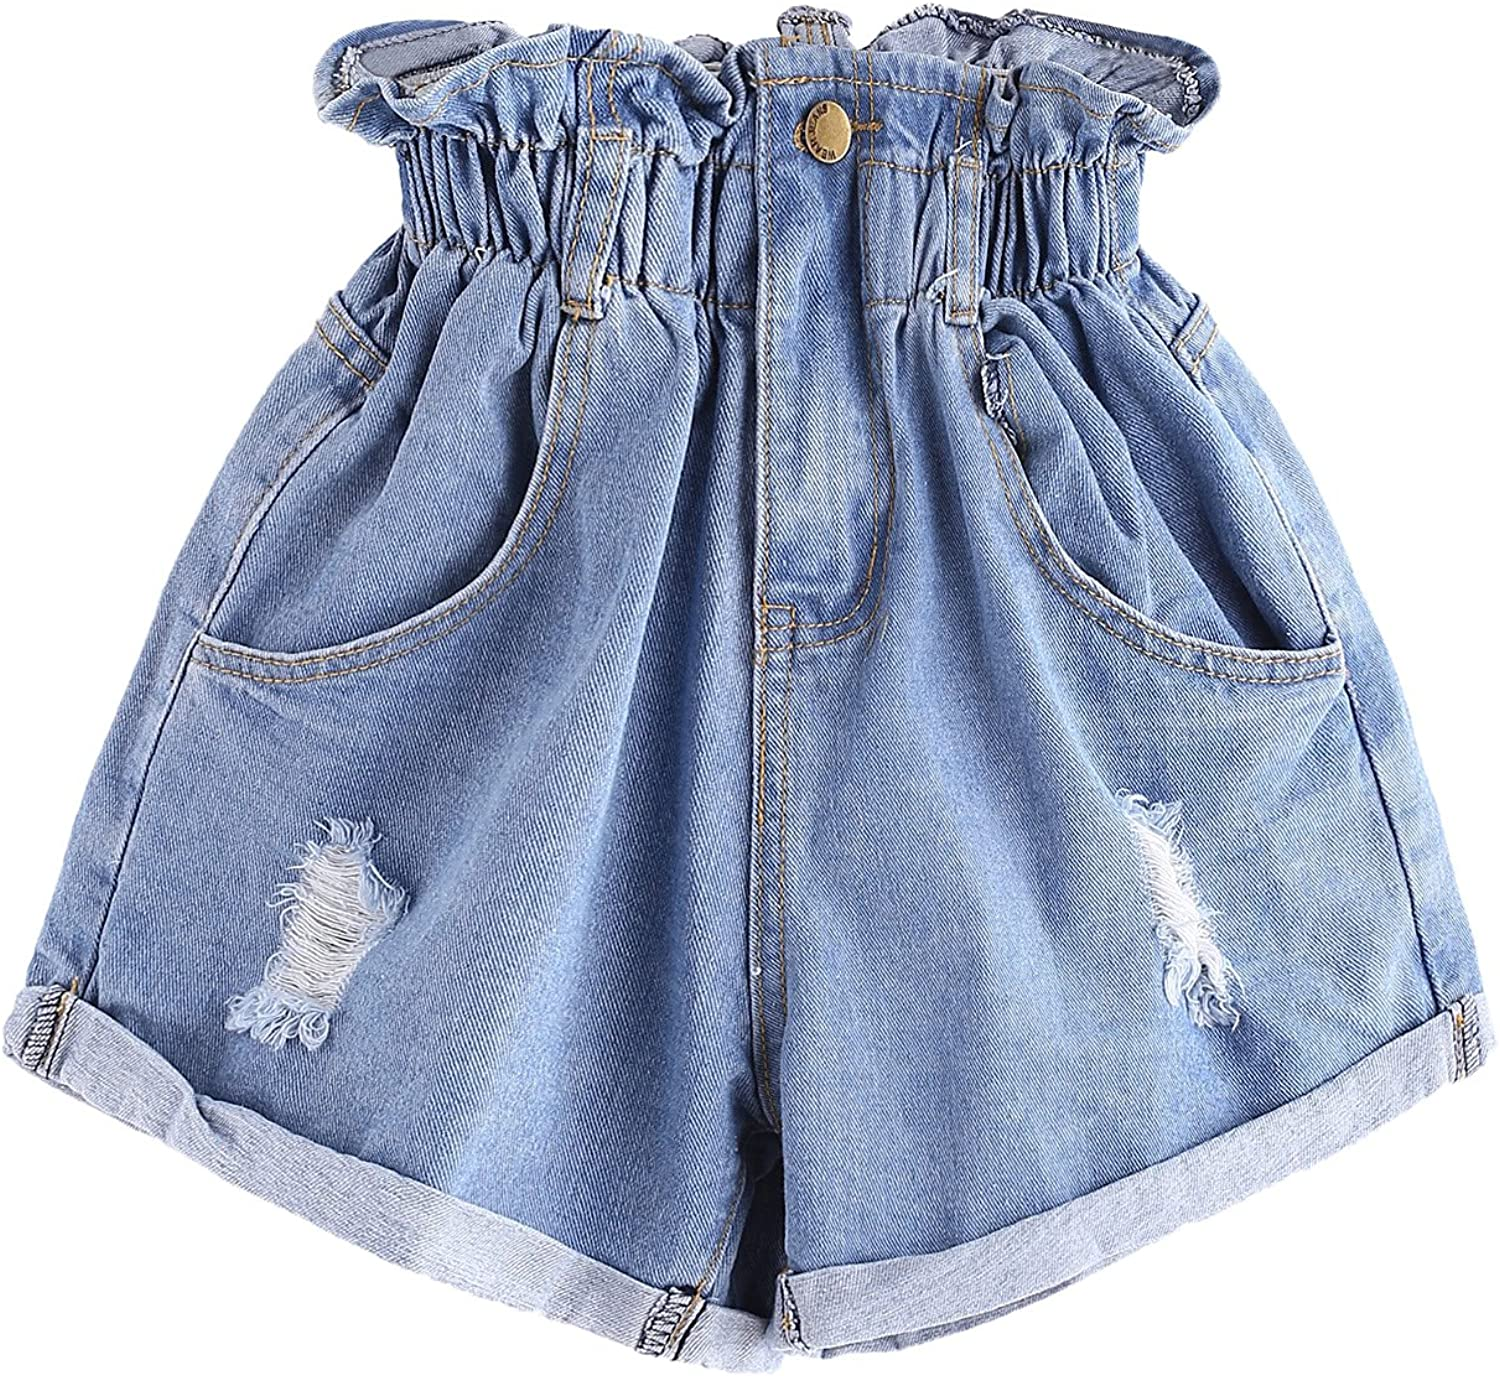 B085NYTBRQ Milumia Women's Casual High Waisted Hemming Denim Jean Shorts with Pockets 810YIm6L0eL